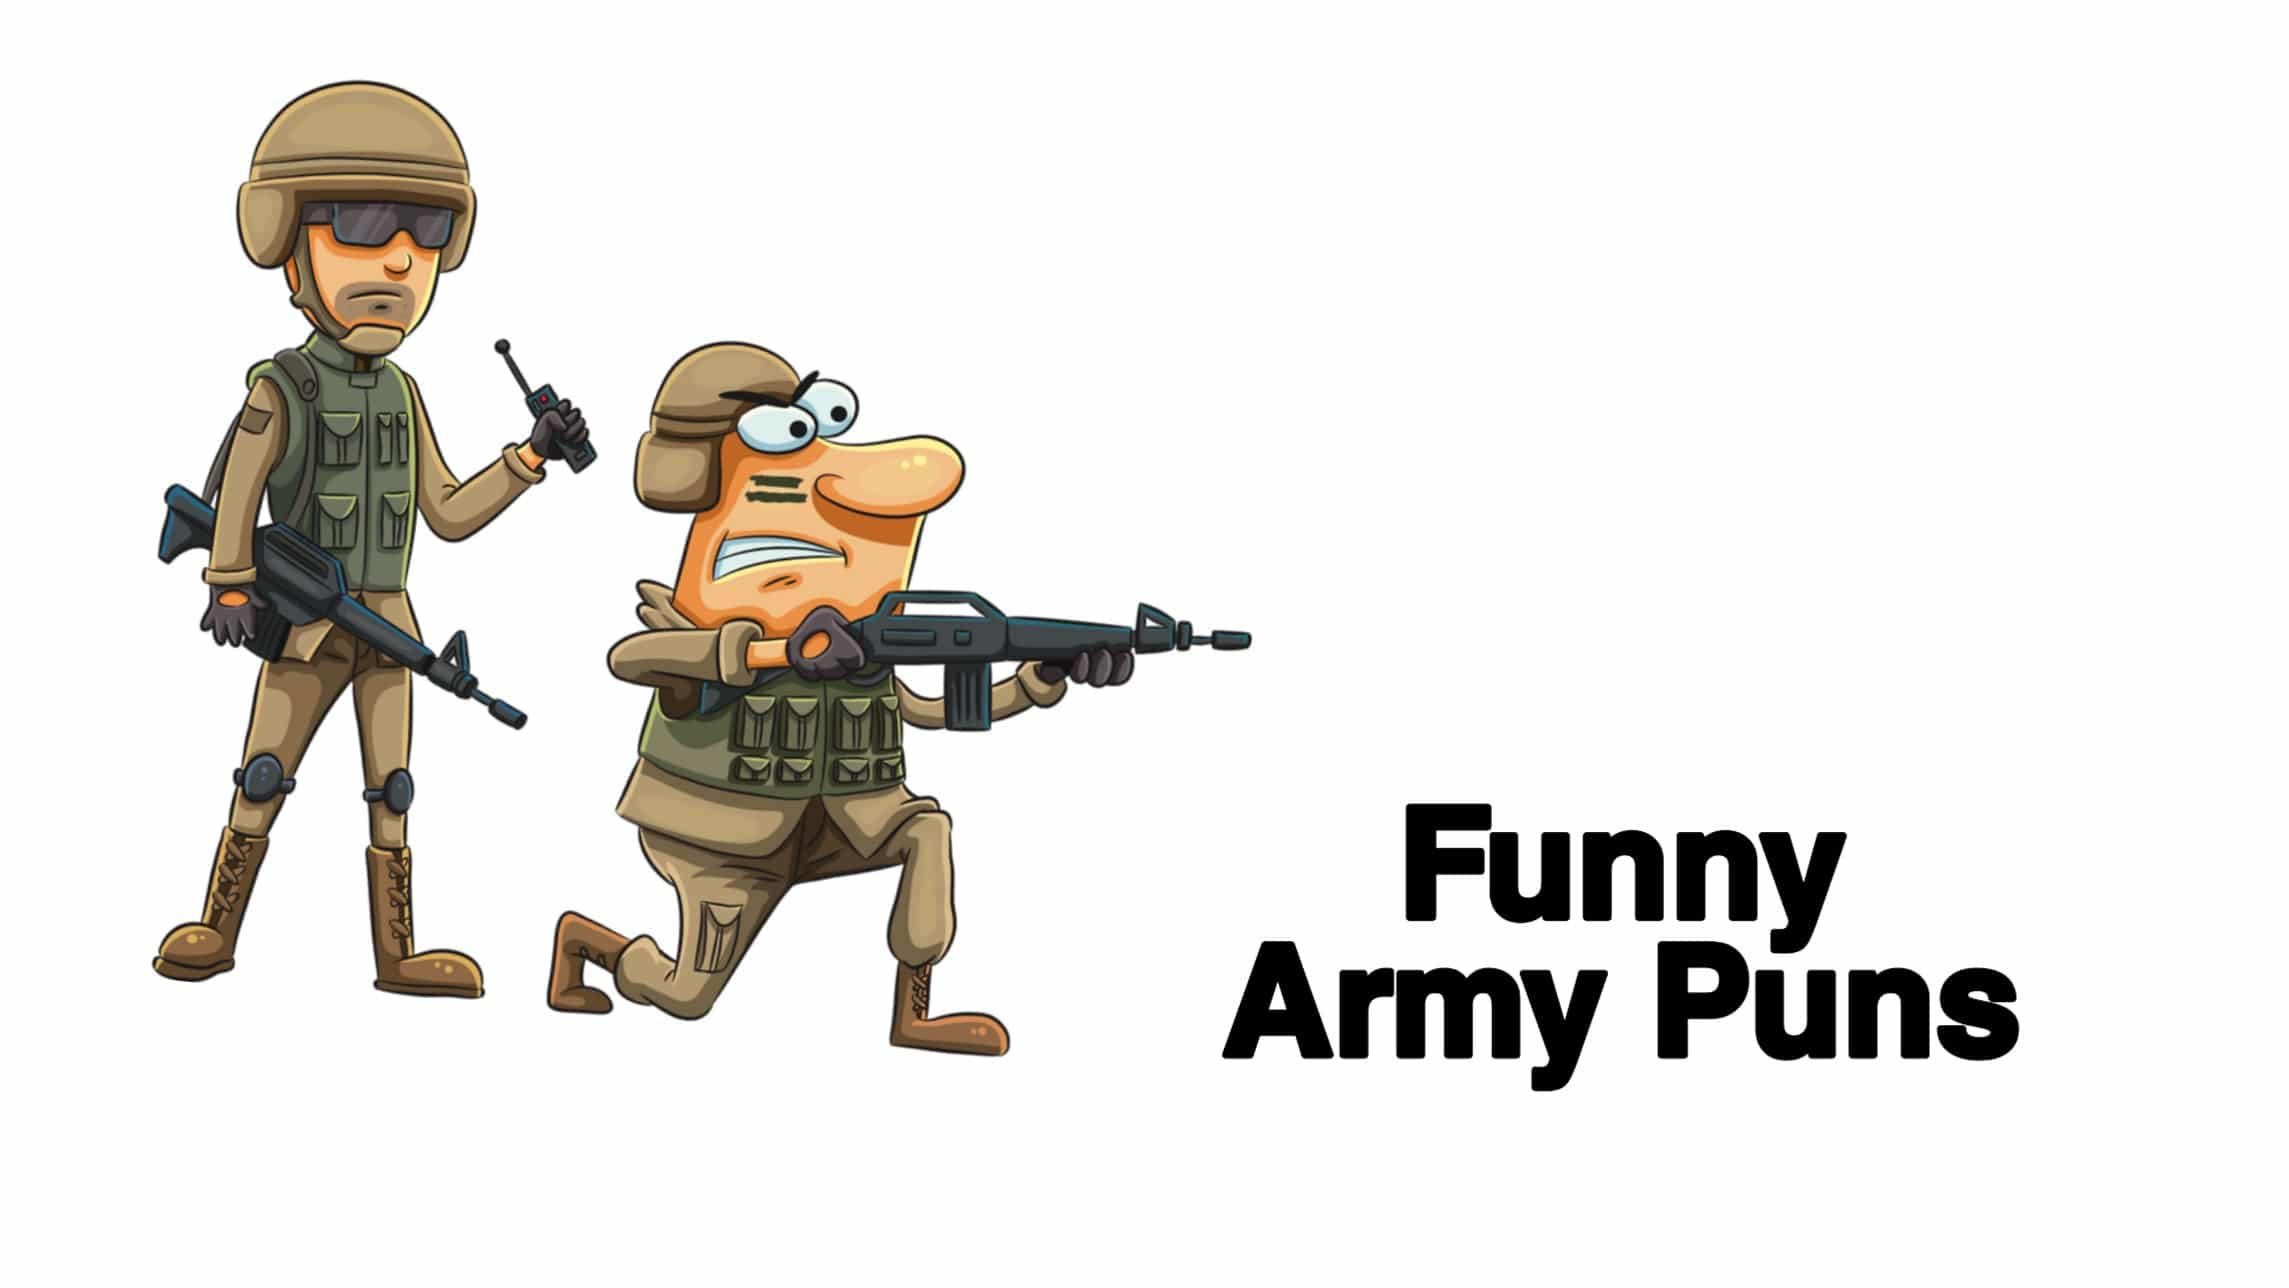 70 Army Puns To Annoy Your Military Friends